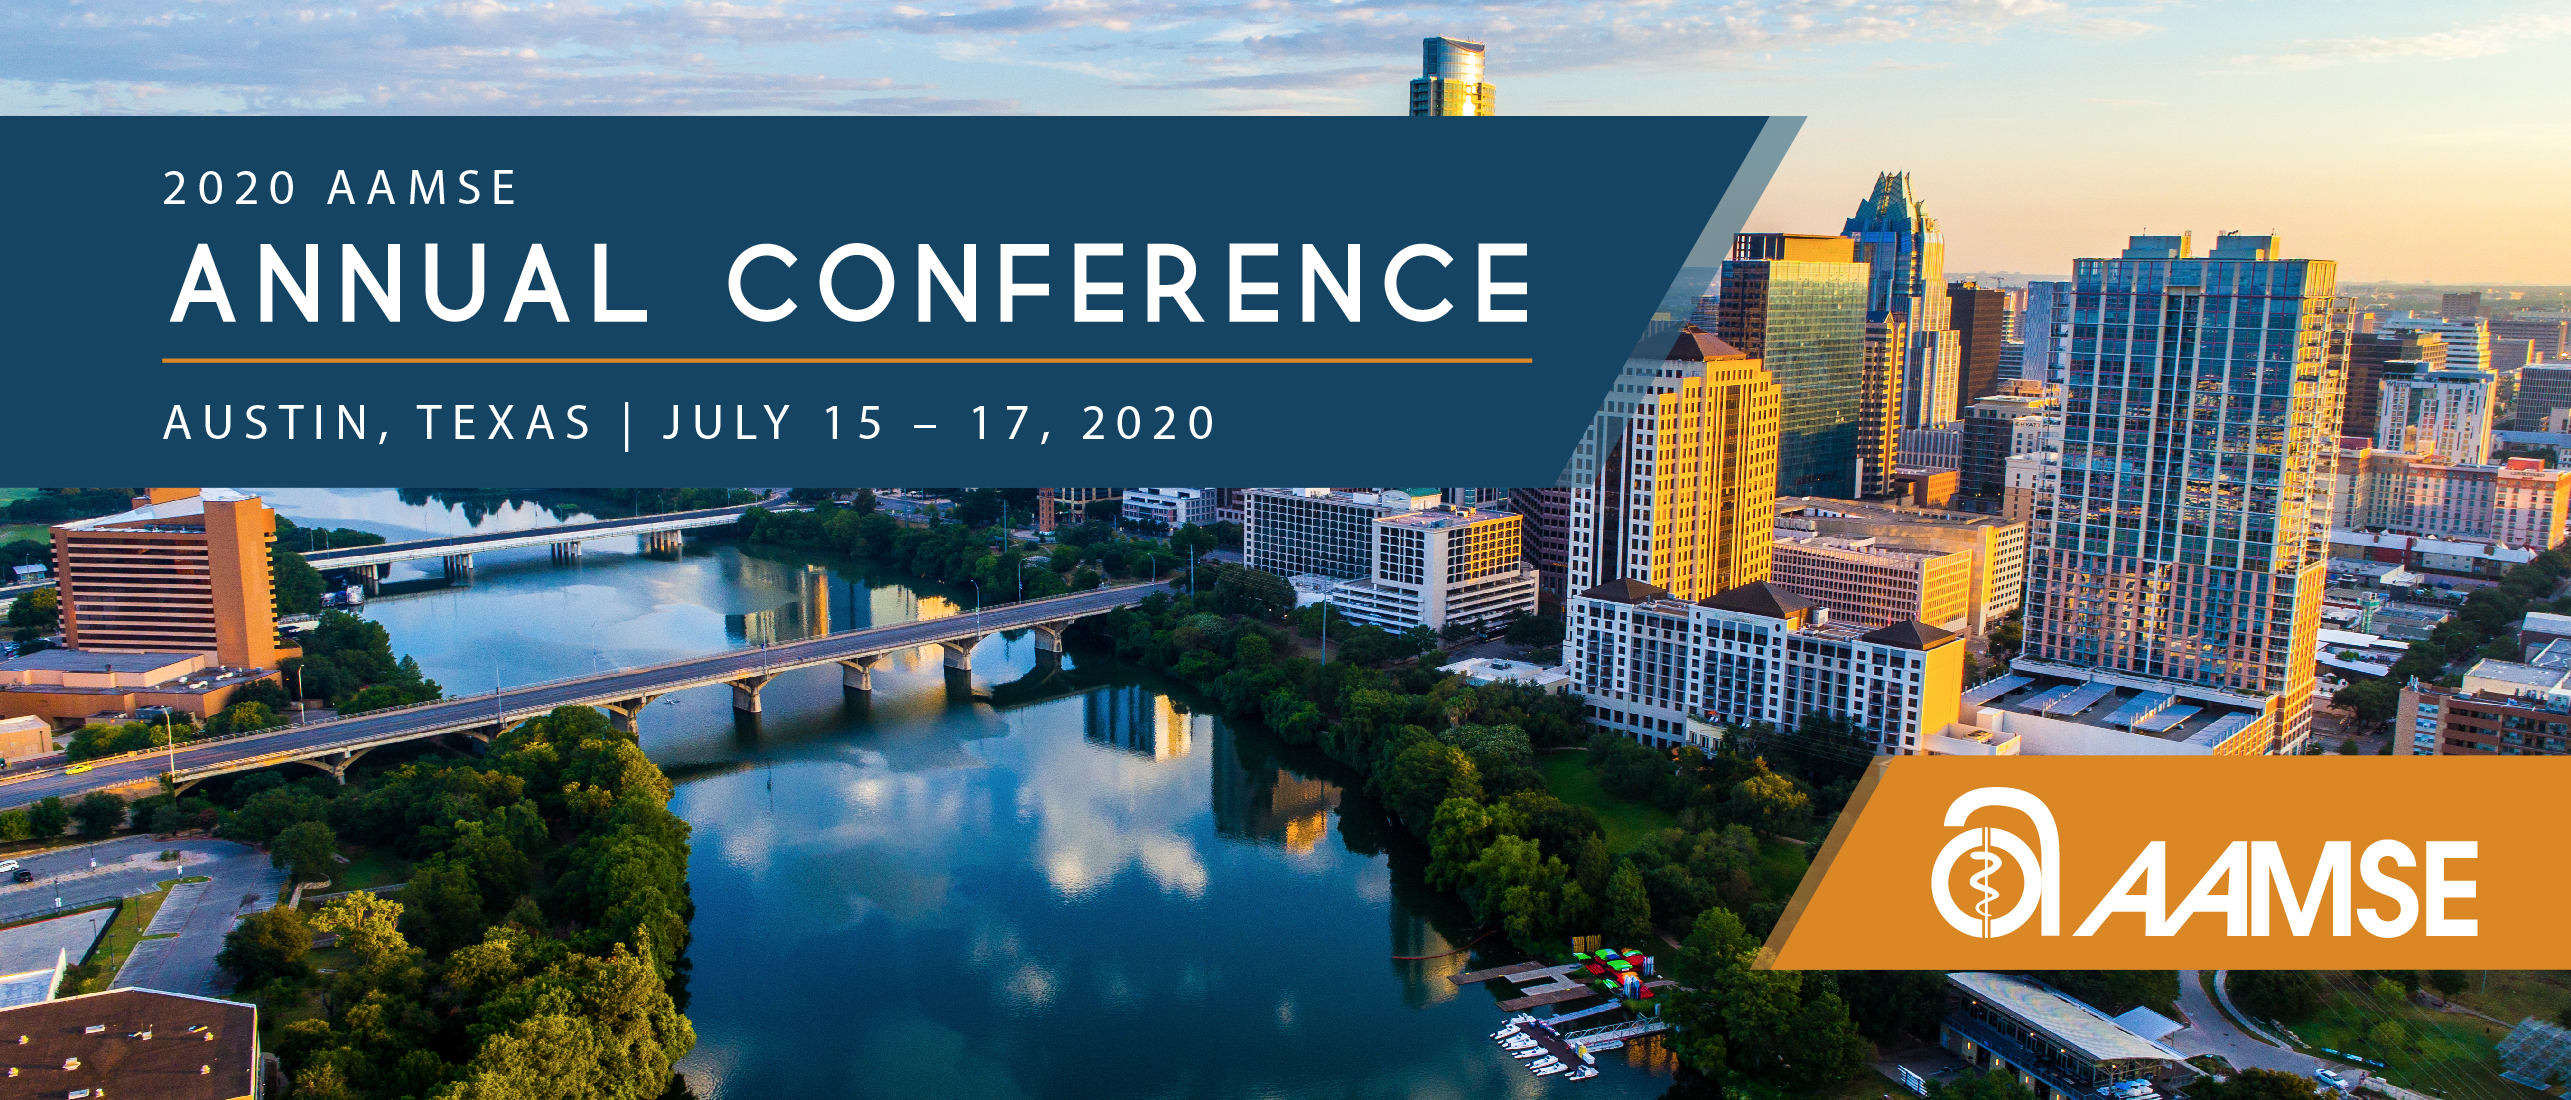 AAMSE 2019 Annual Conference